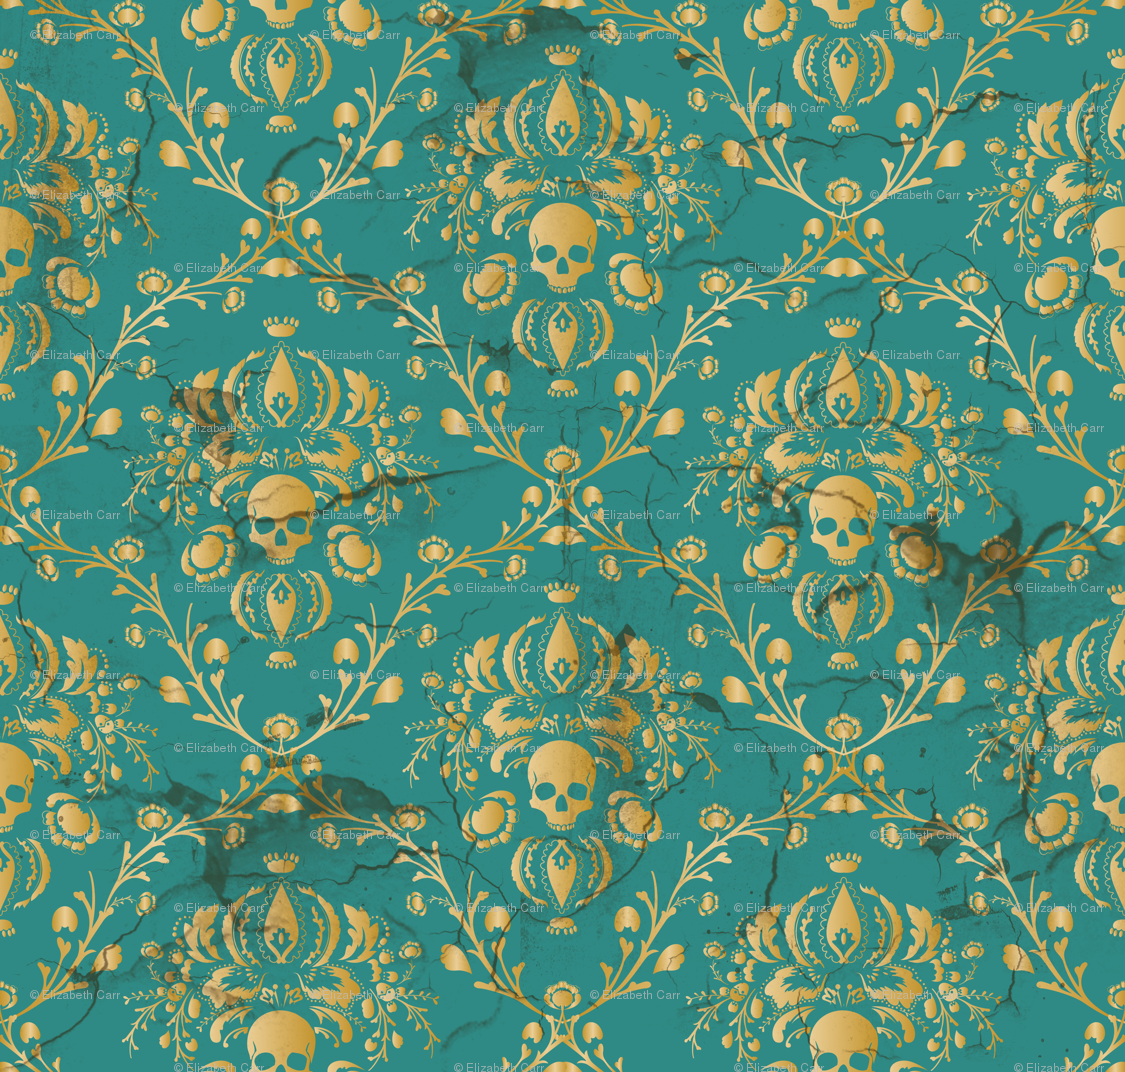 Teal Skull Damask Wallpaper